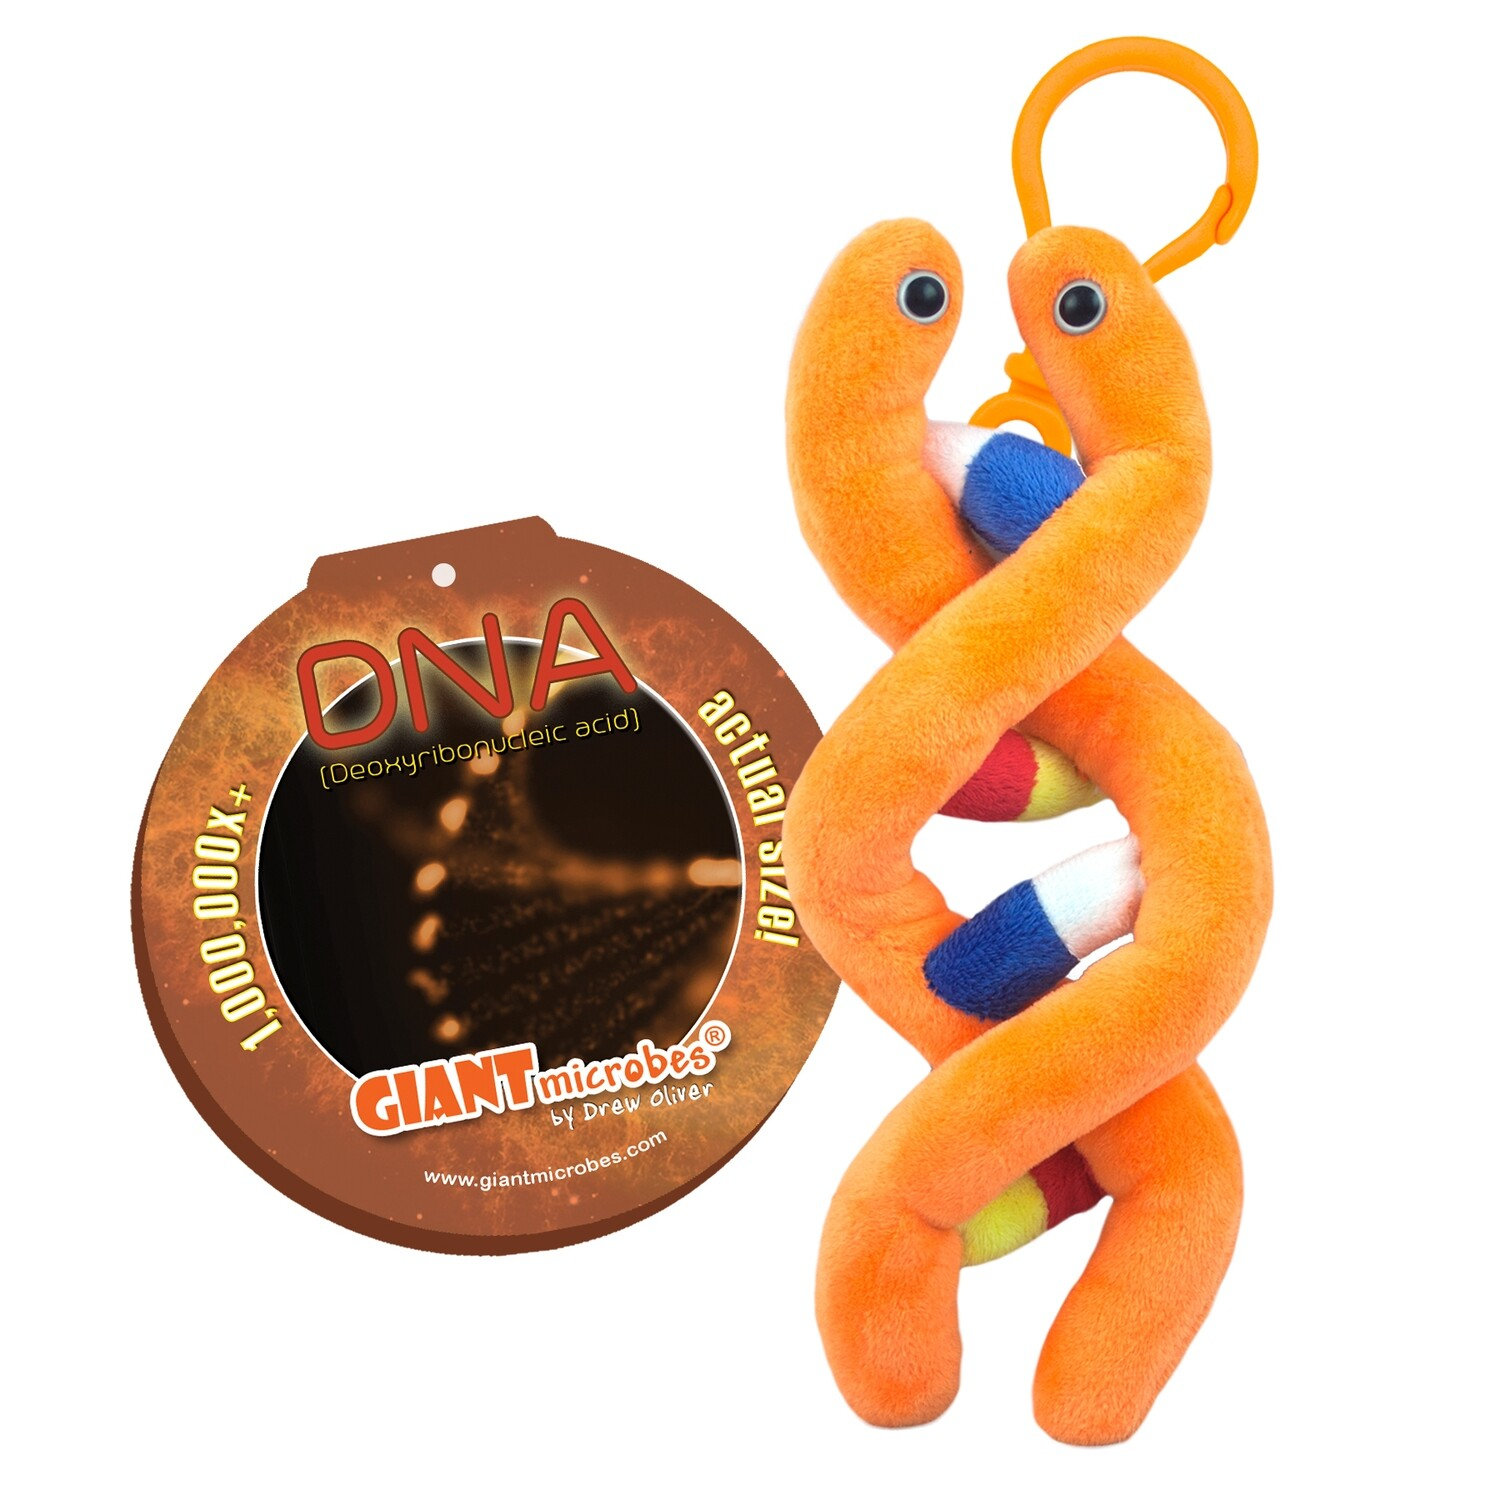 Giant Microbe KeyChain DNA